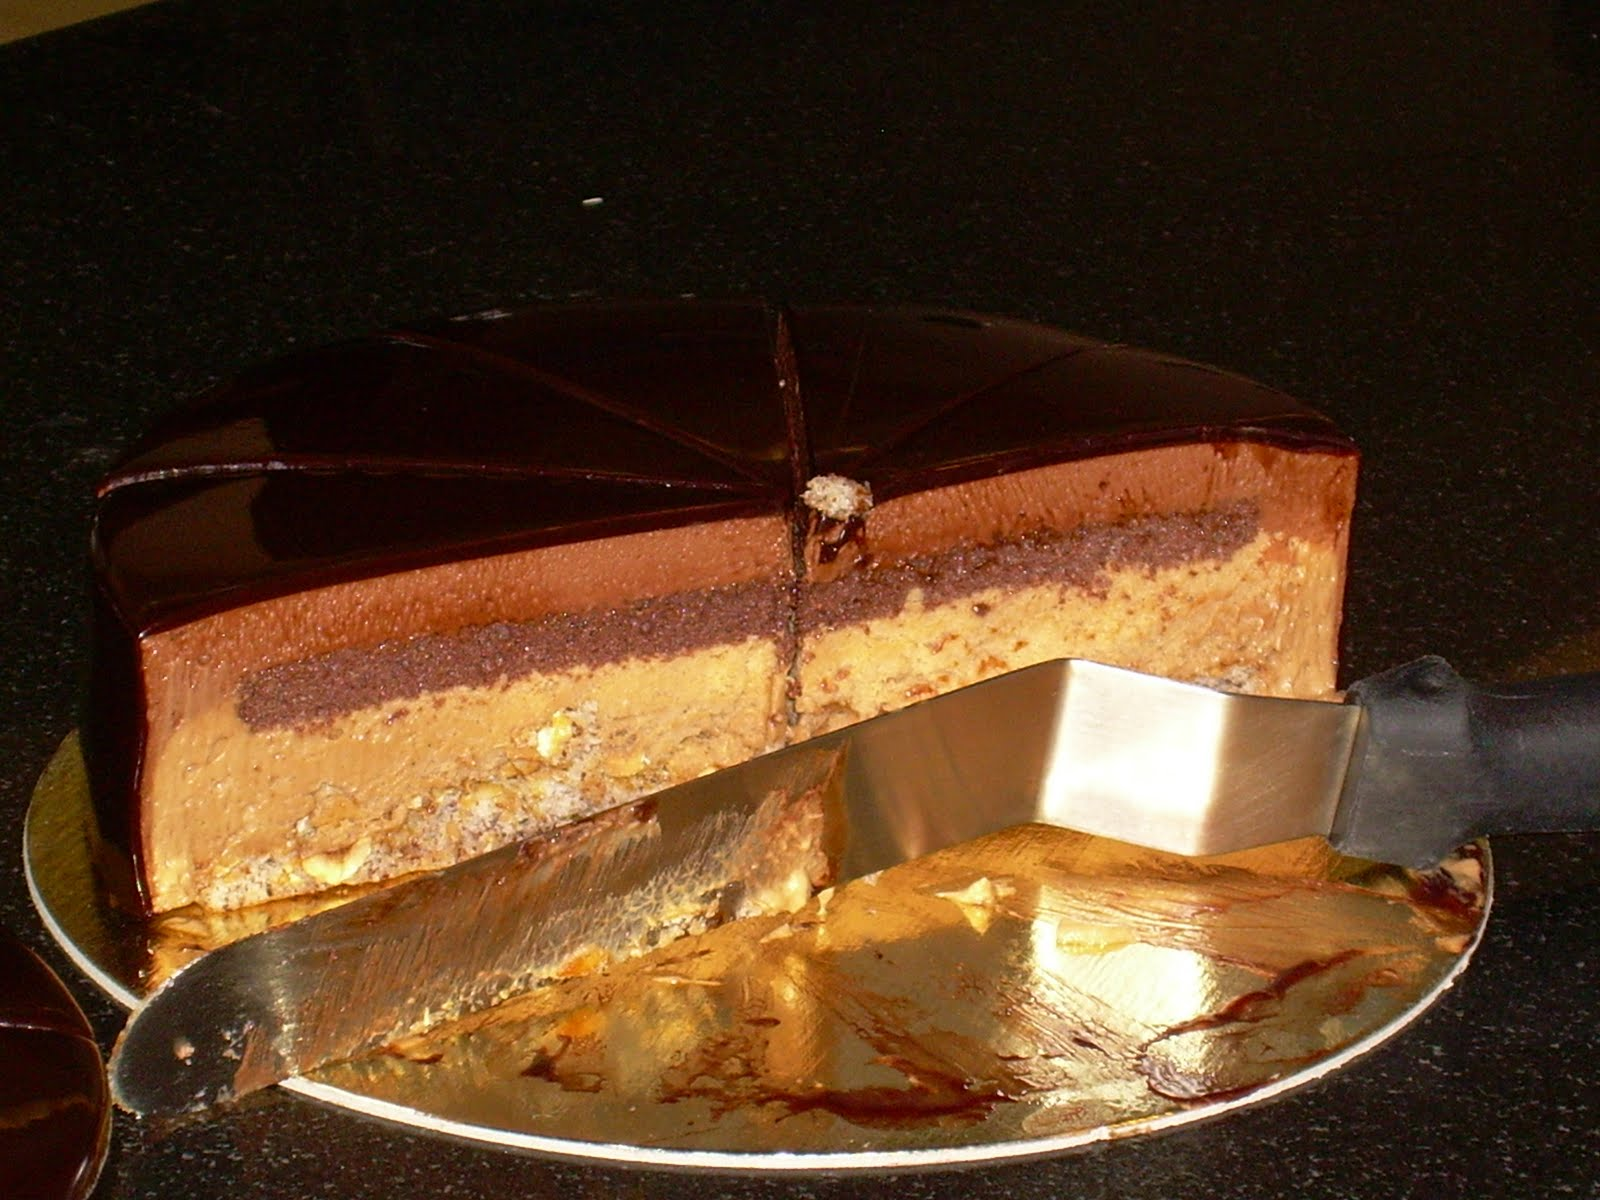 cake chocolate hazelnut mousse chocolate glazed hazelnut mousse cake ...